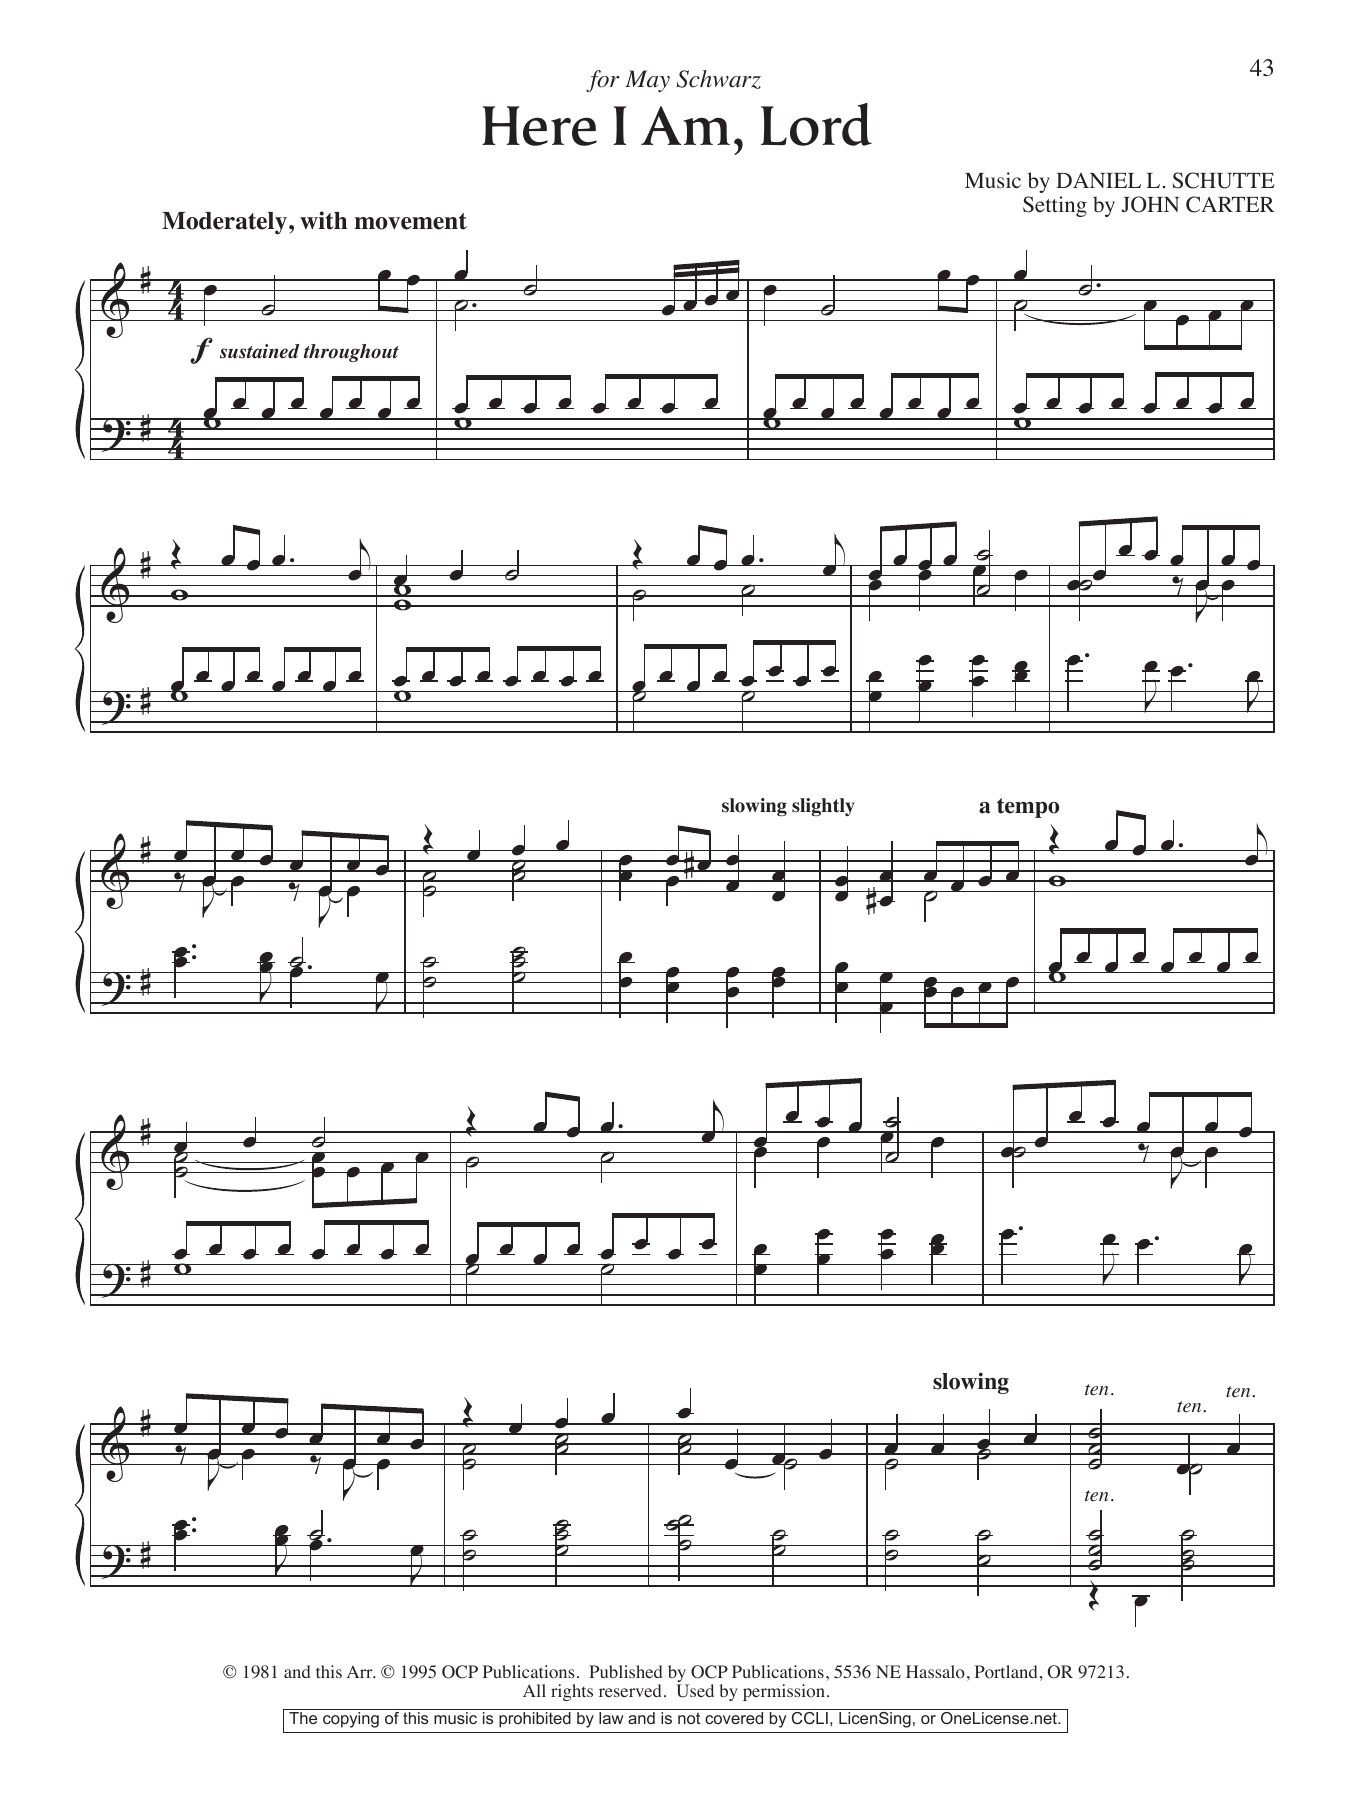 John Carter Here I Am, Lord sheet music notes and chords. Download Printable PDF.